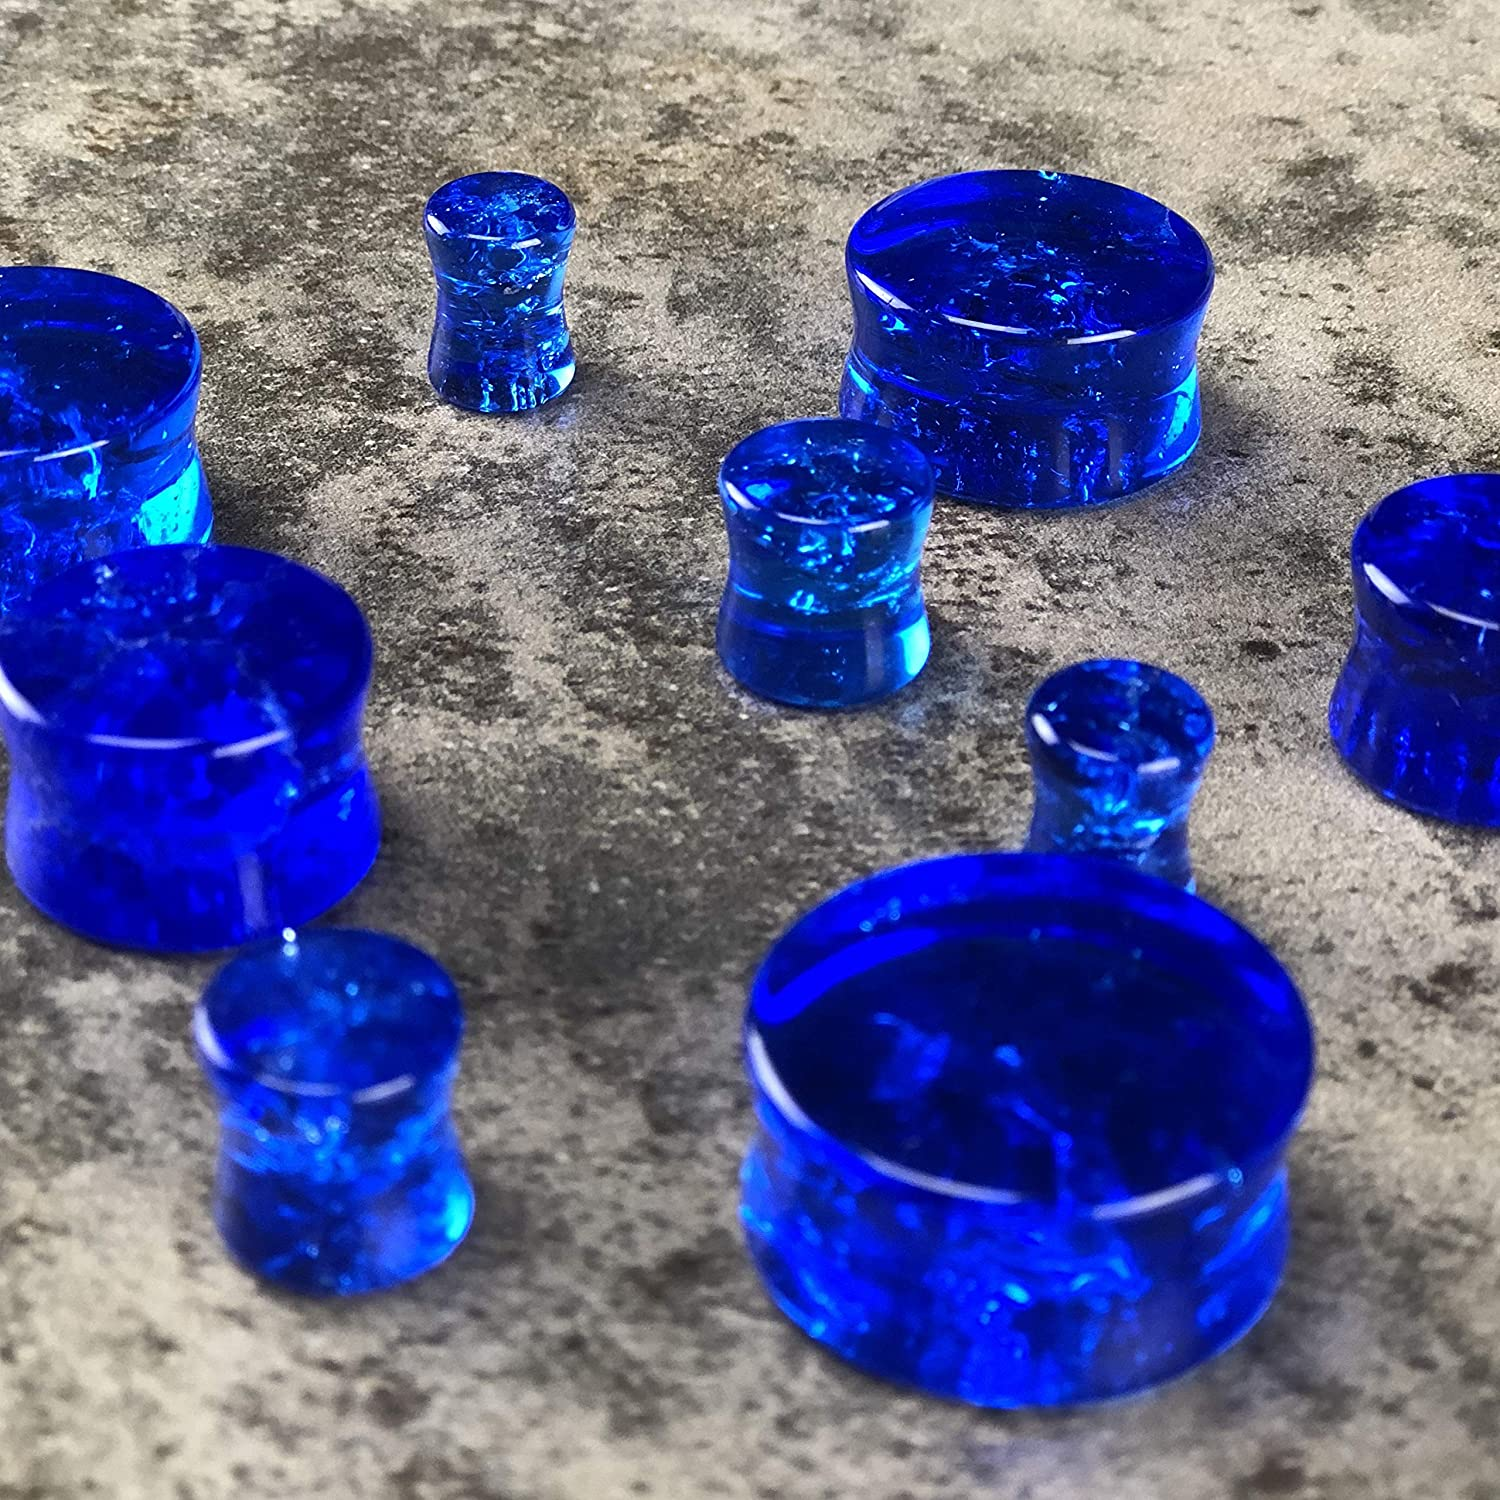 PG-526 Sold as a Pair Mystic Metals Body Jewelry Pair of Blue Crackle Glass Plugs